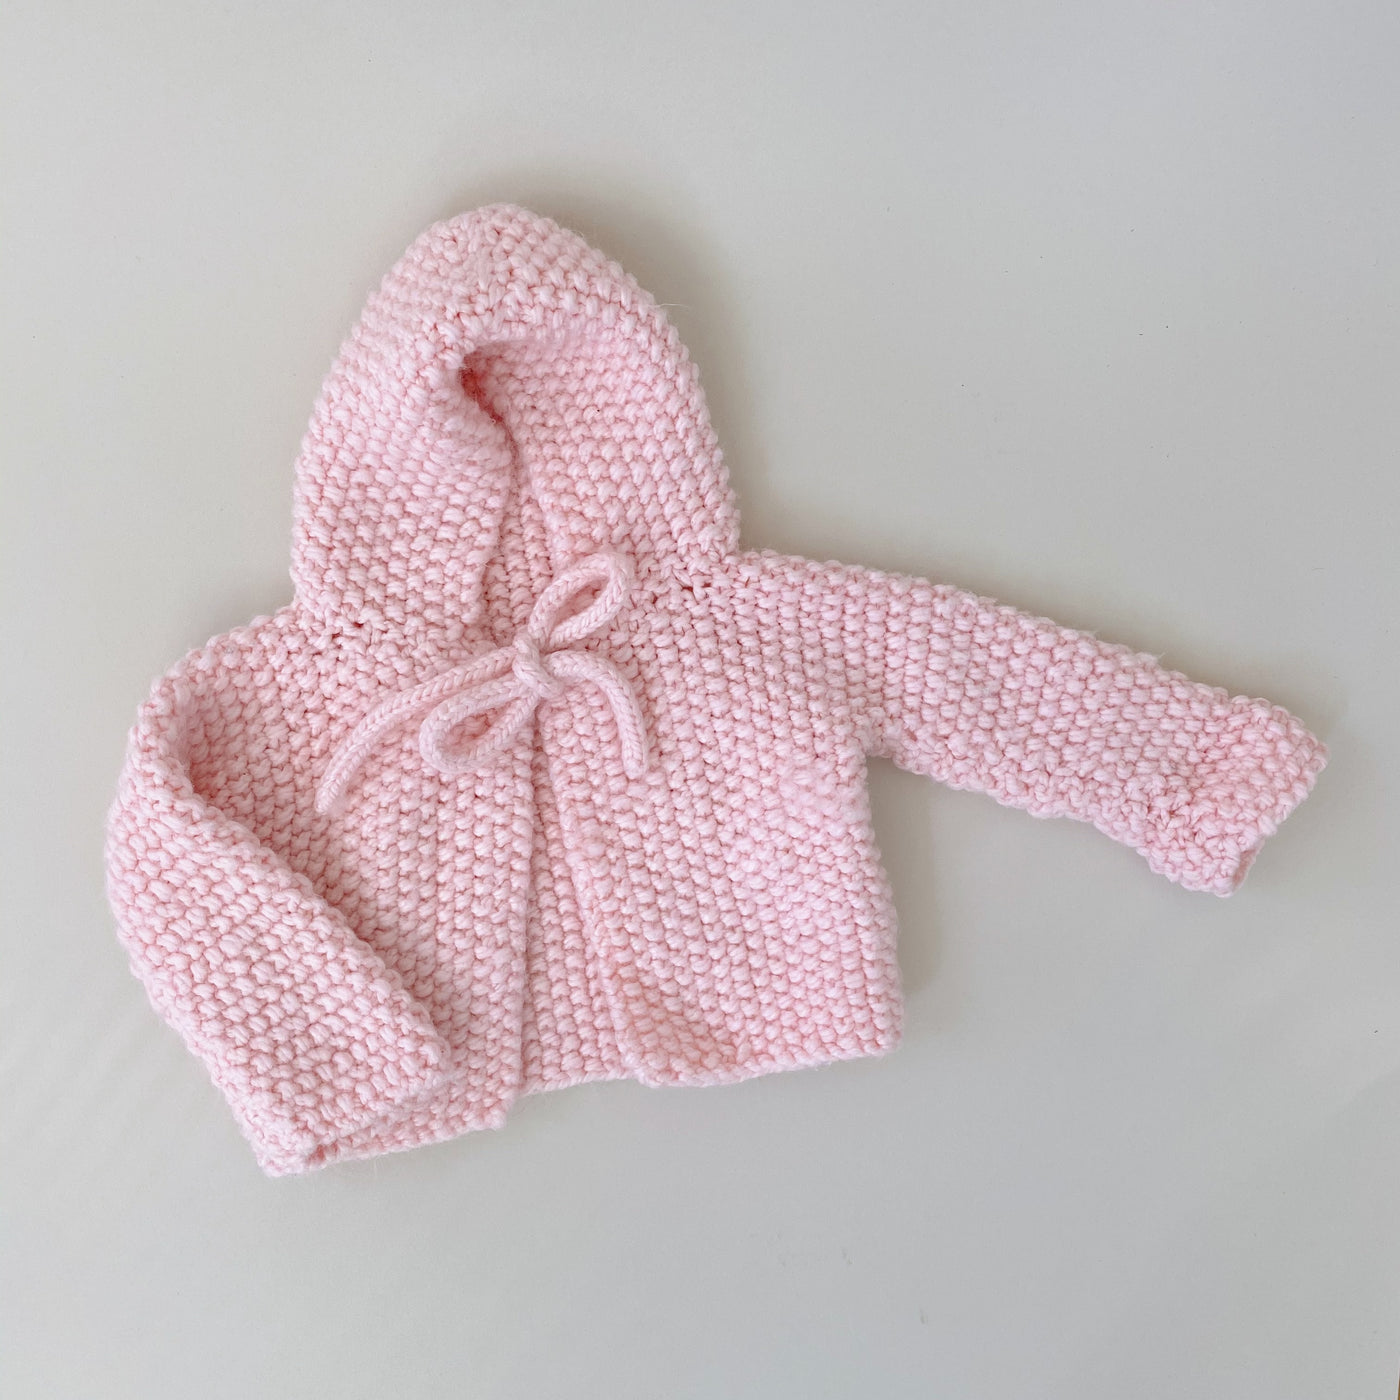 Handmade Pale Pink Sweater / Size 6-12M